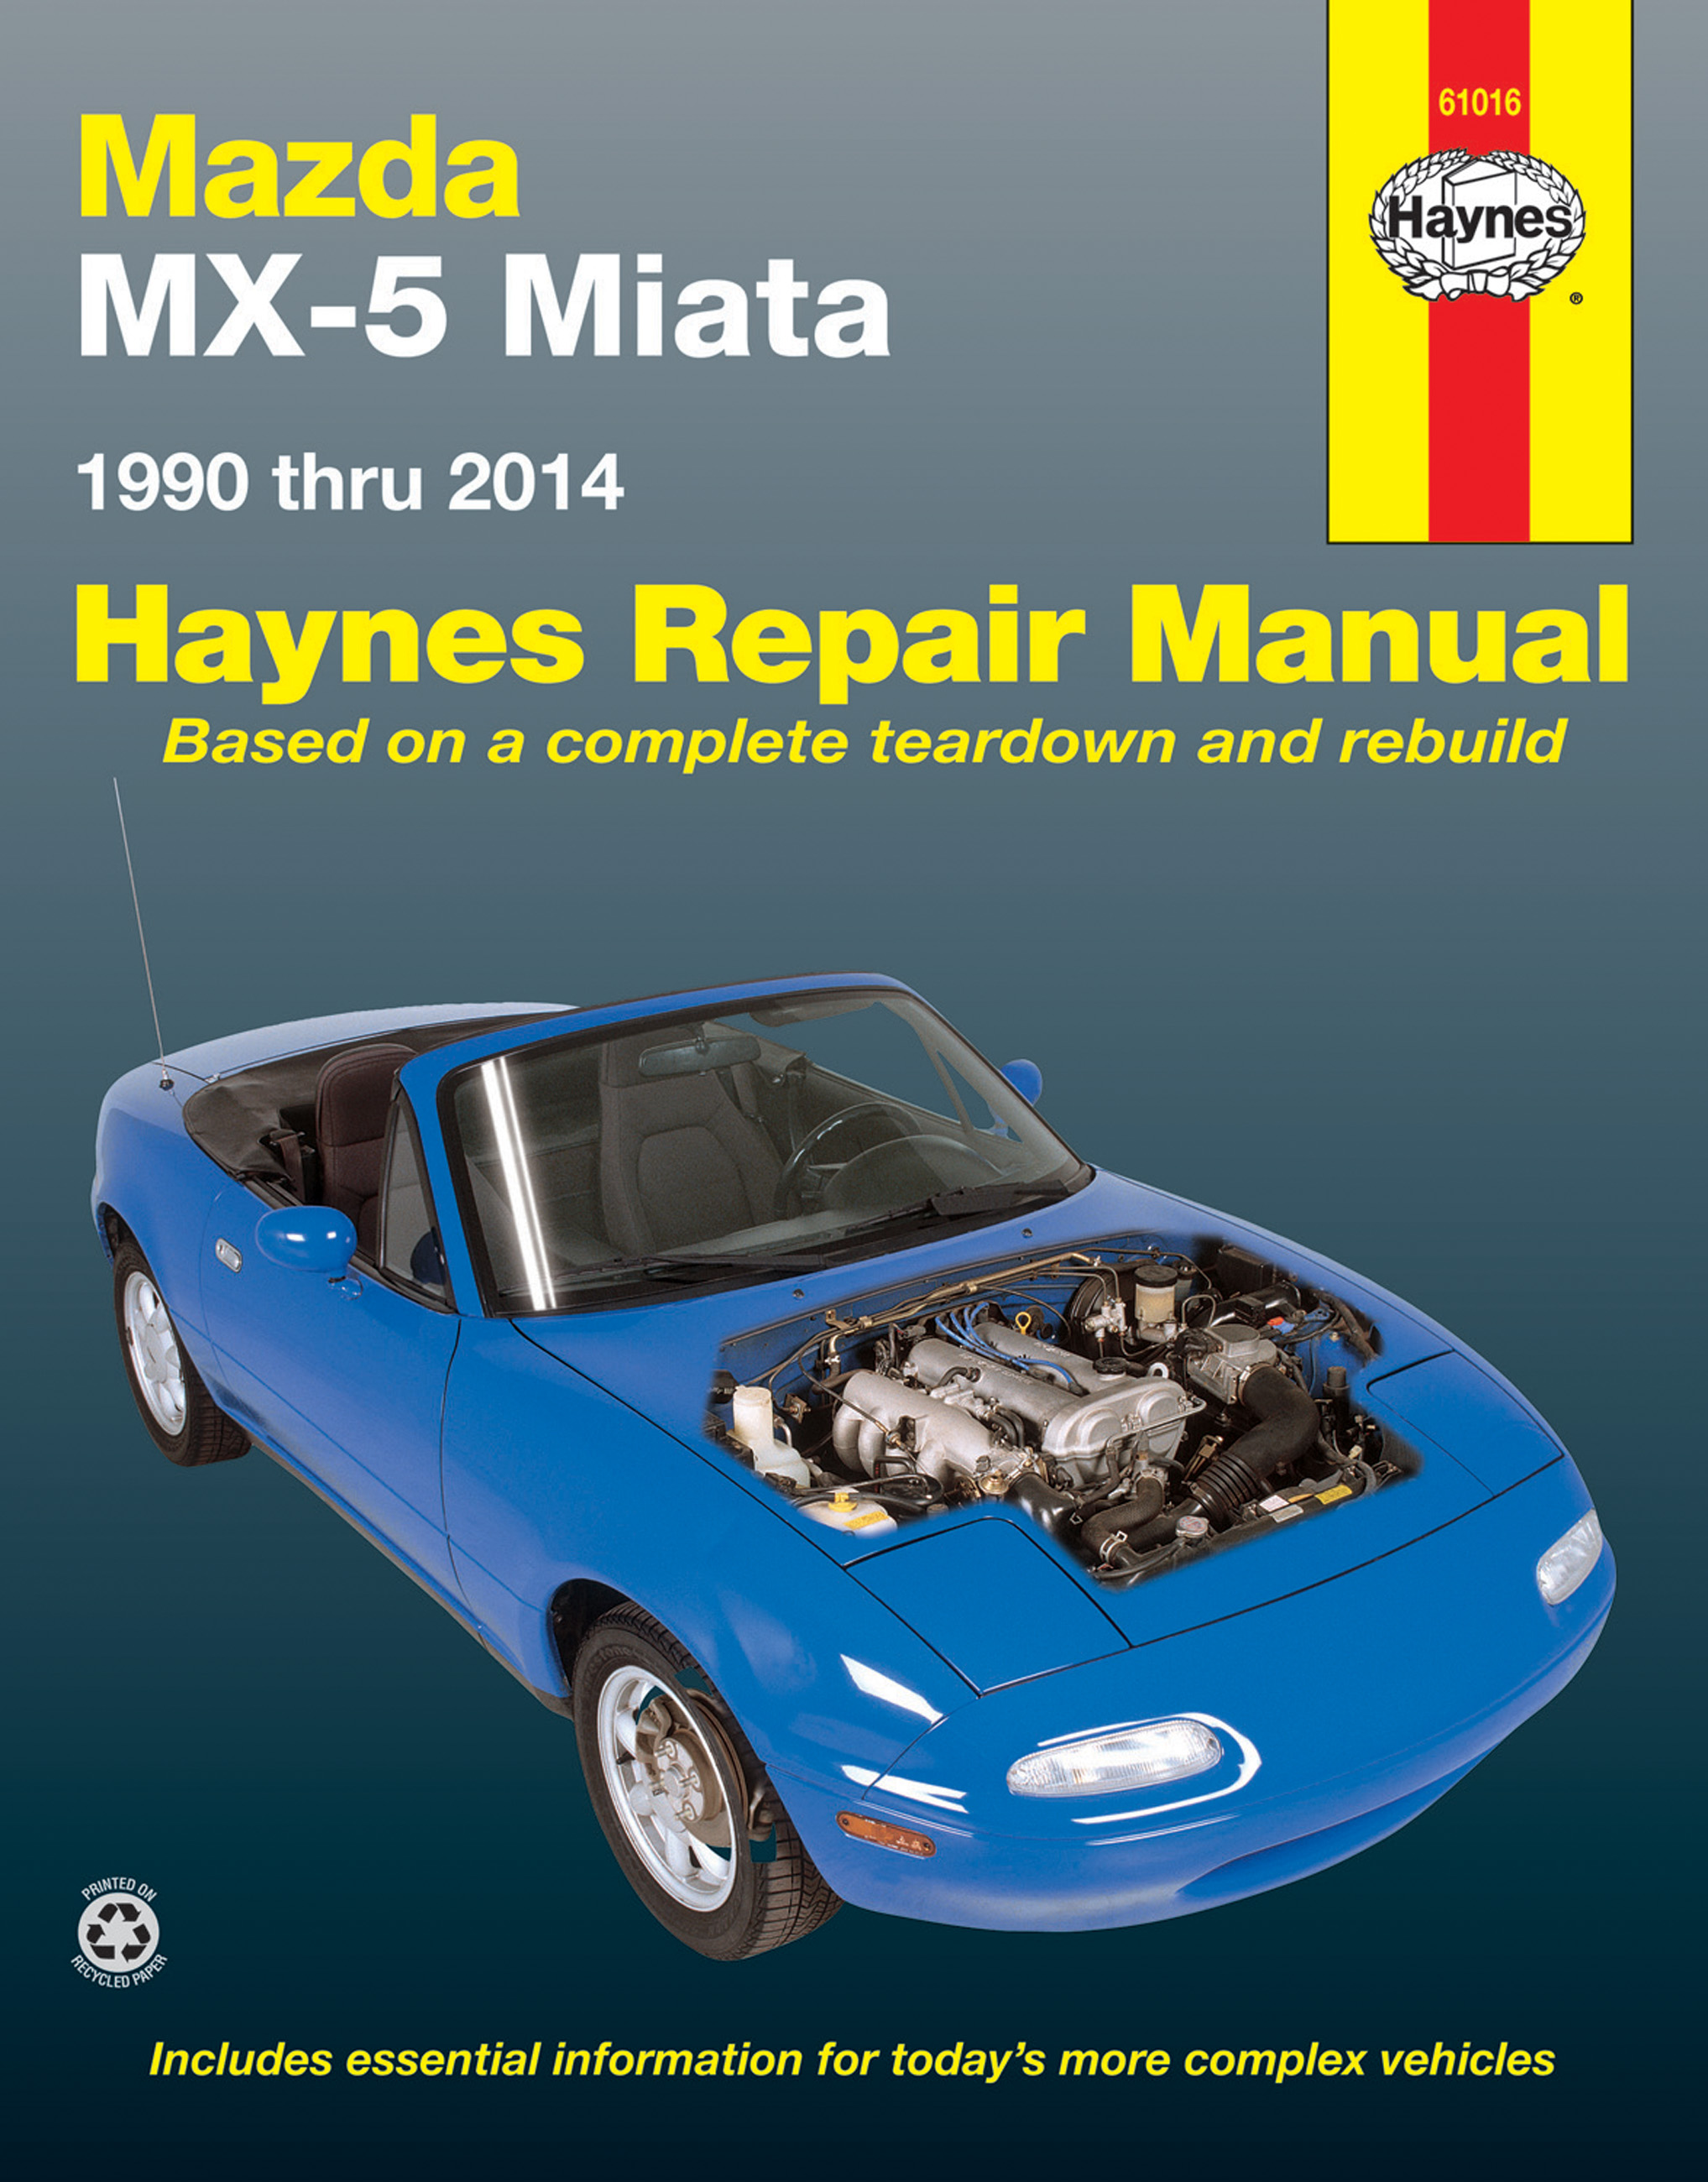 Sentinel Mazda MX-5 Miata WORKSHOP REPAIR SERVICE MANUAL BOOK HAYNES  CHILTON MX5 NON TURB